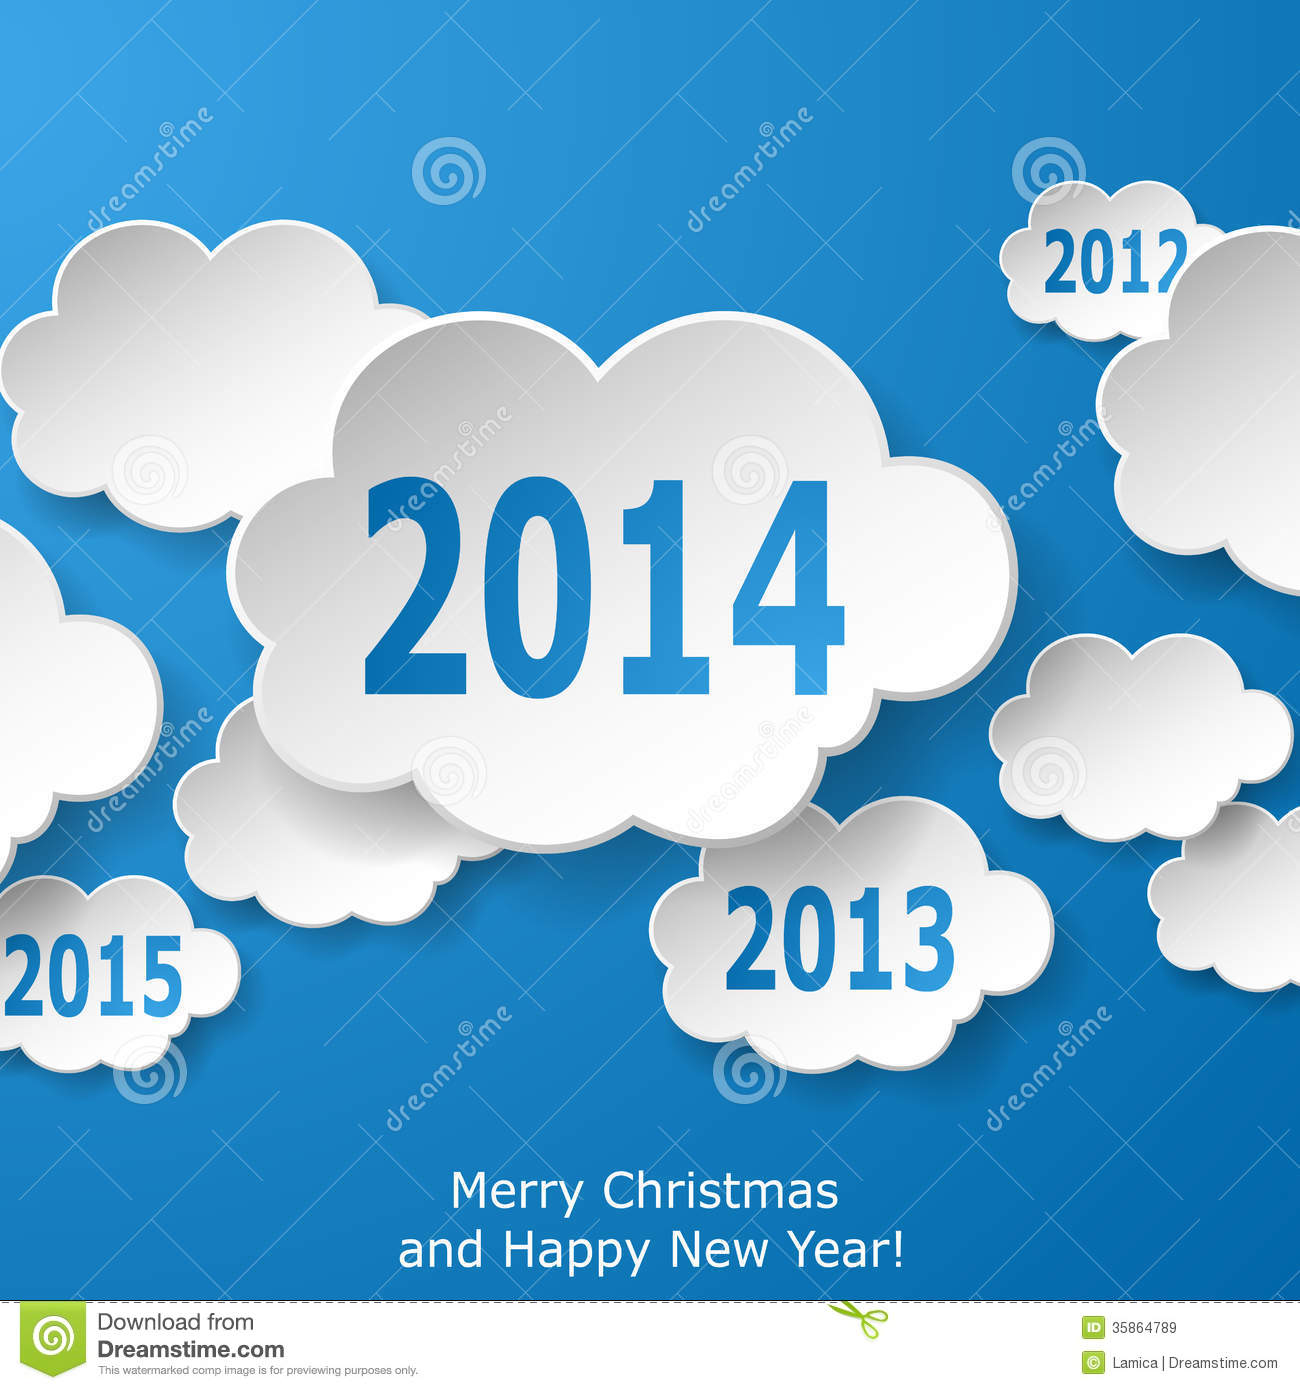 modern new year greeting card with paper clouds on blue background